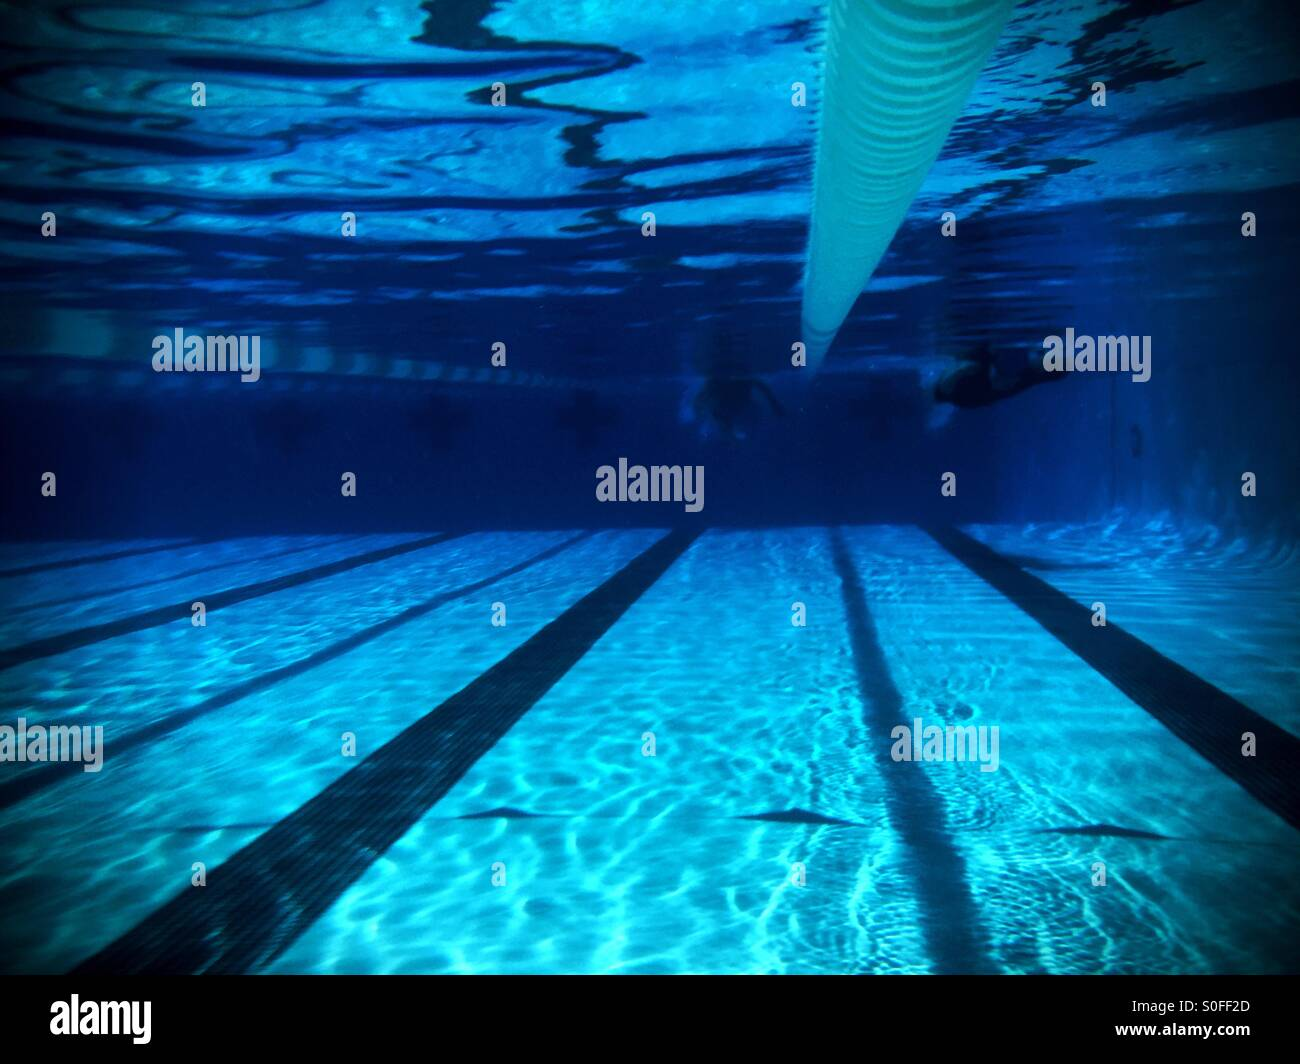 Olympic size pool stock photos olympic size pool stock - How far is 50 lengths of a swimming pool ...